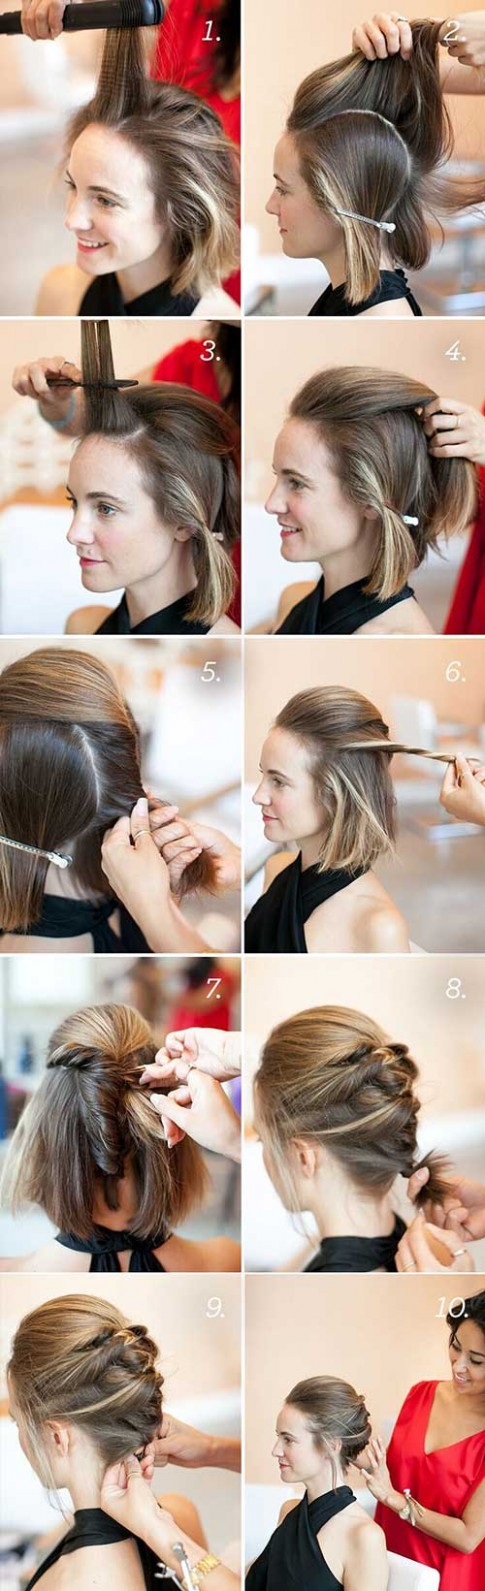 8 Incredible DIY Short Hairstyles A Step By Step Guide Everyday Hairstyles For Short Hair